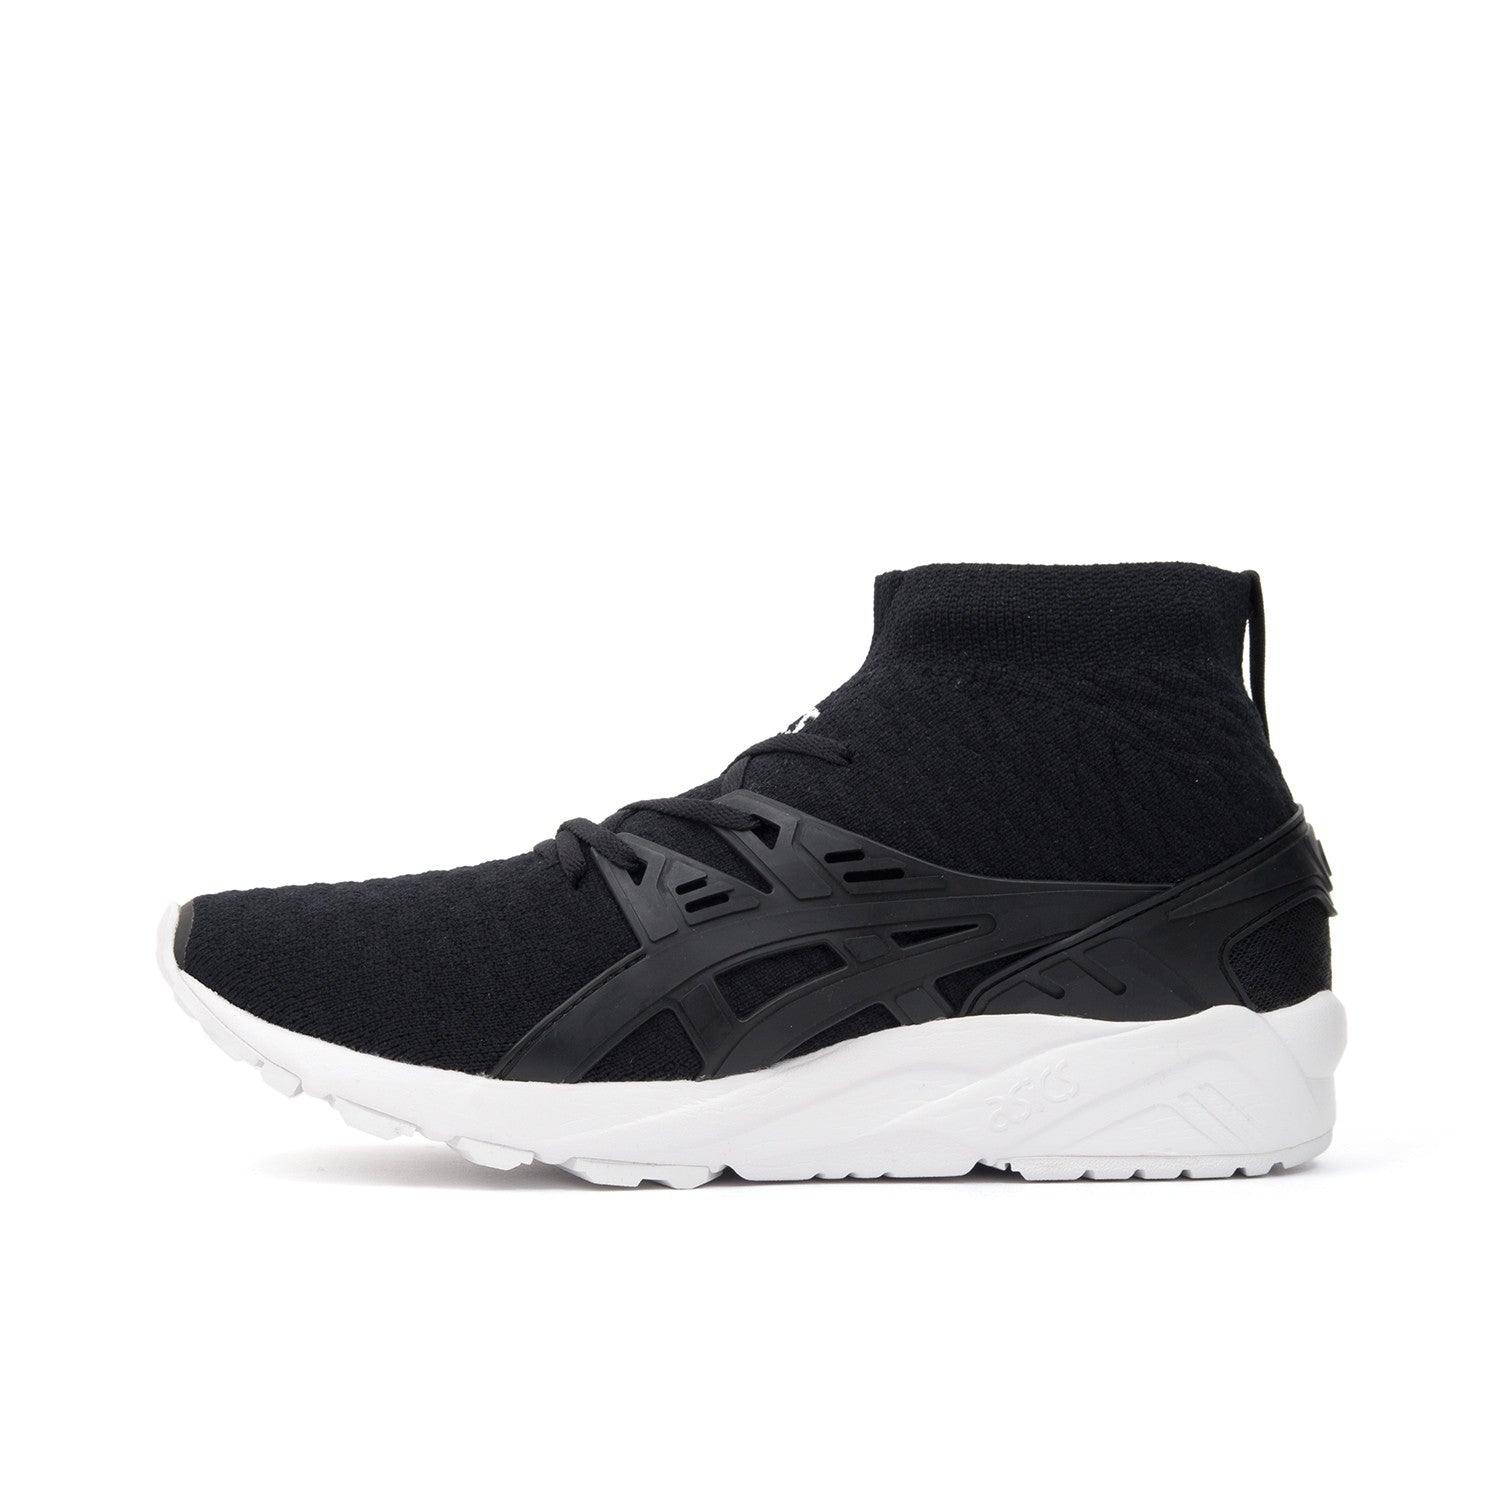 online store a4a14 77bcf Asics Gel-Kayano Trainer Knit MT Black (H7P4N-9090)